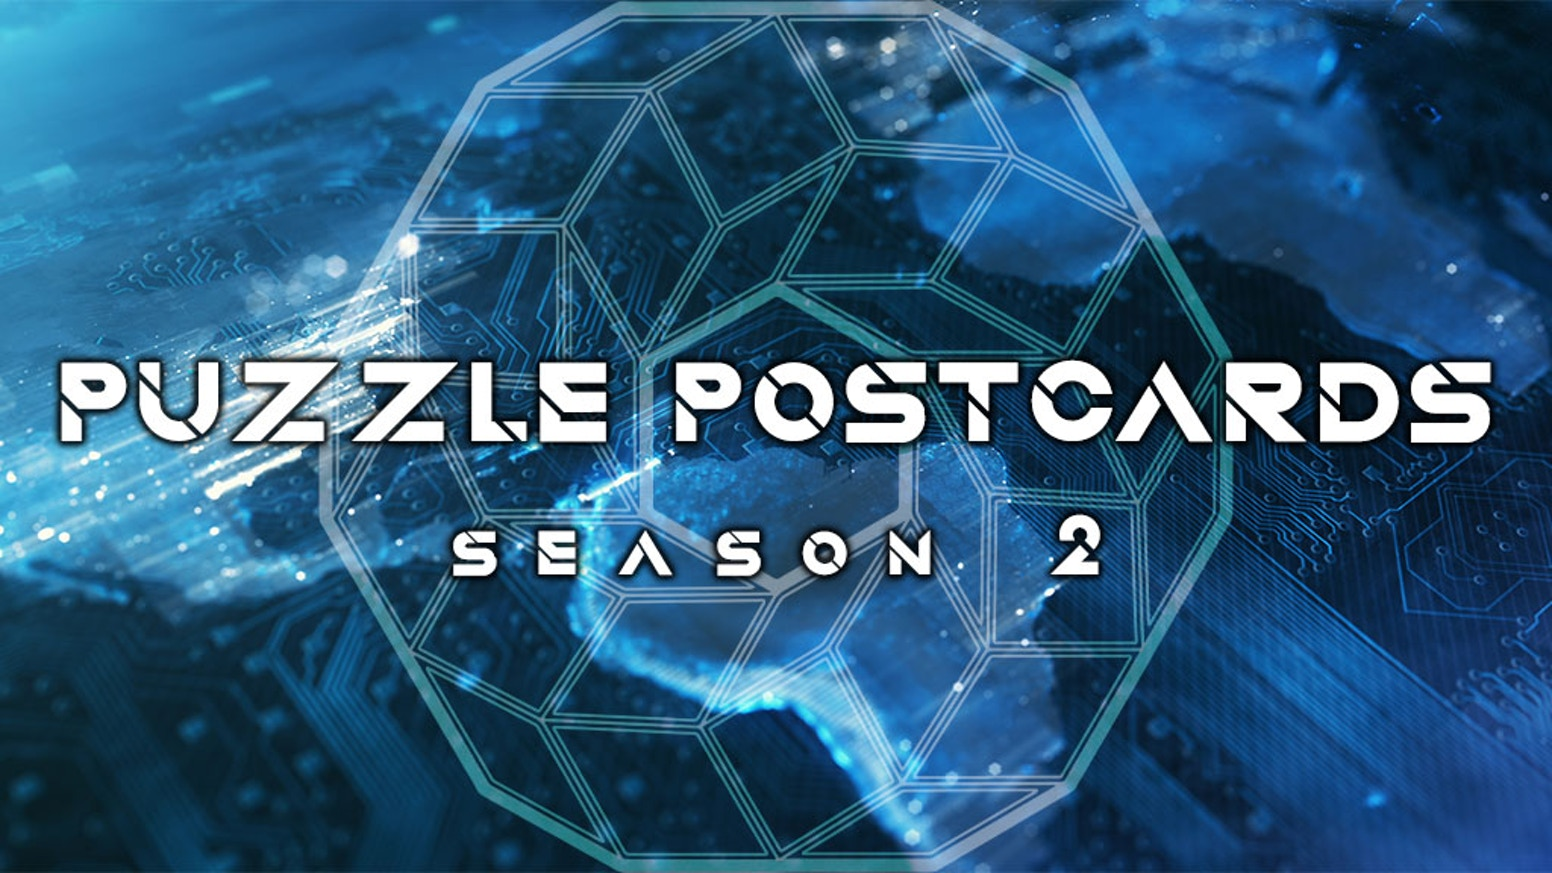 Four new intense and exciting puzzle games in postcard form.